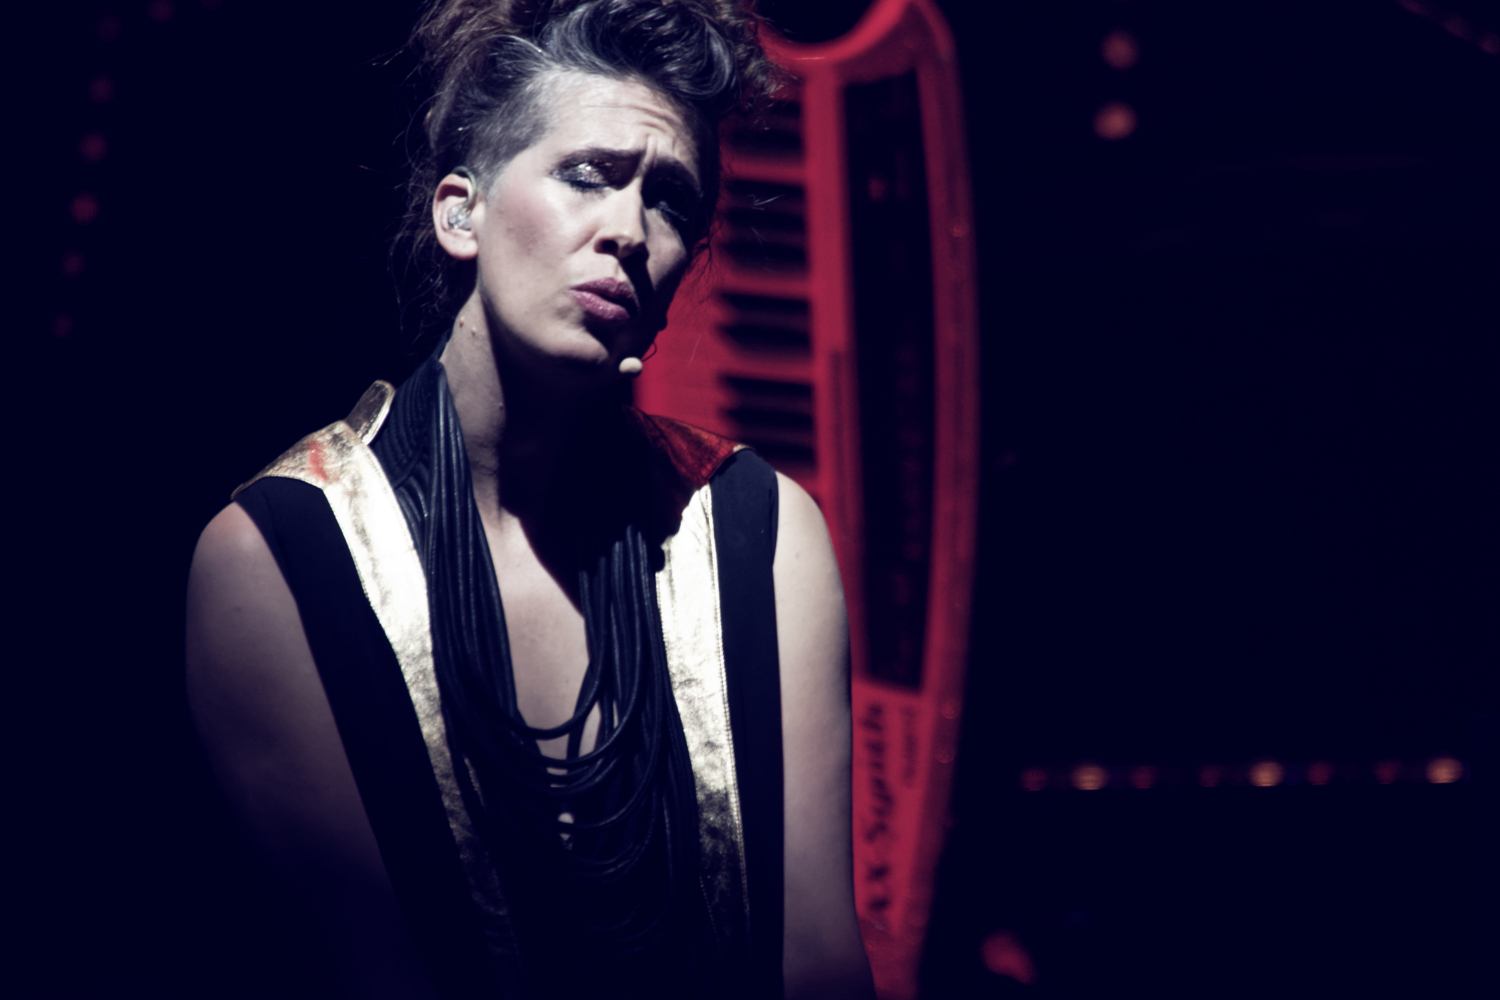 20190608 066 The Masonic - Imogen Heap.jpg